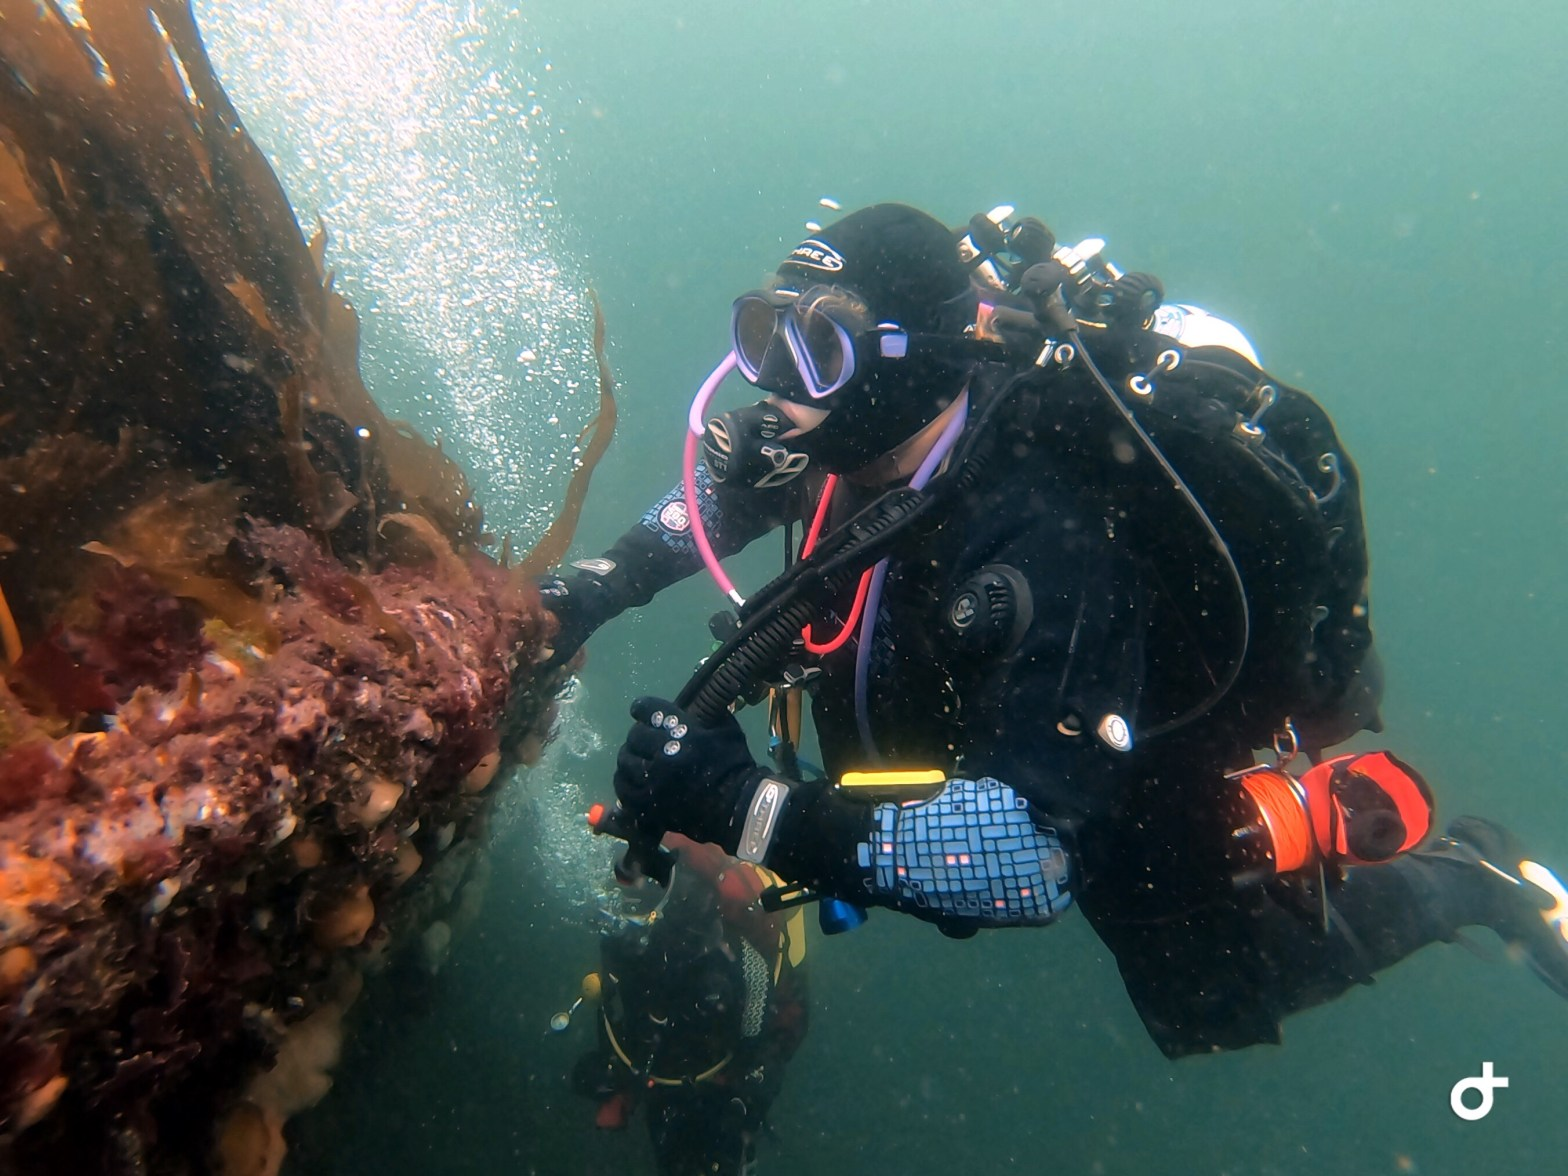 Twinset Diver on the Rondo in the Sound of Mull